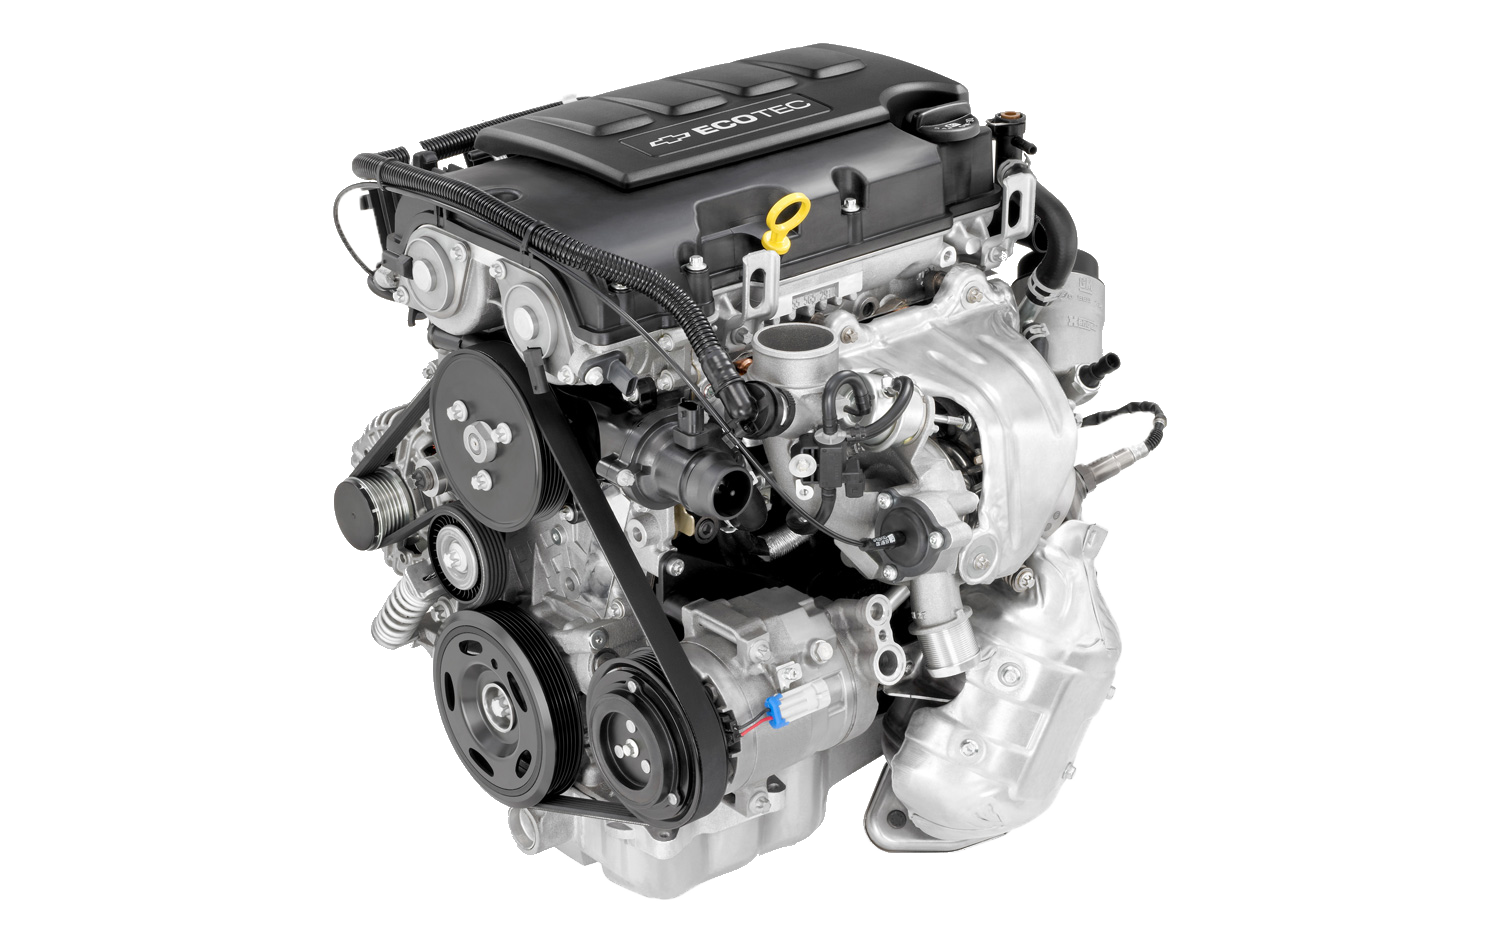 Car Engine Png Transparent Google Search Chevrolet Cruze